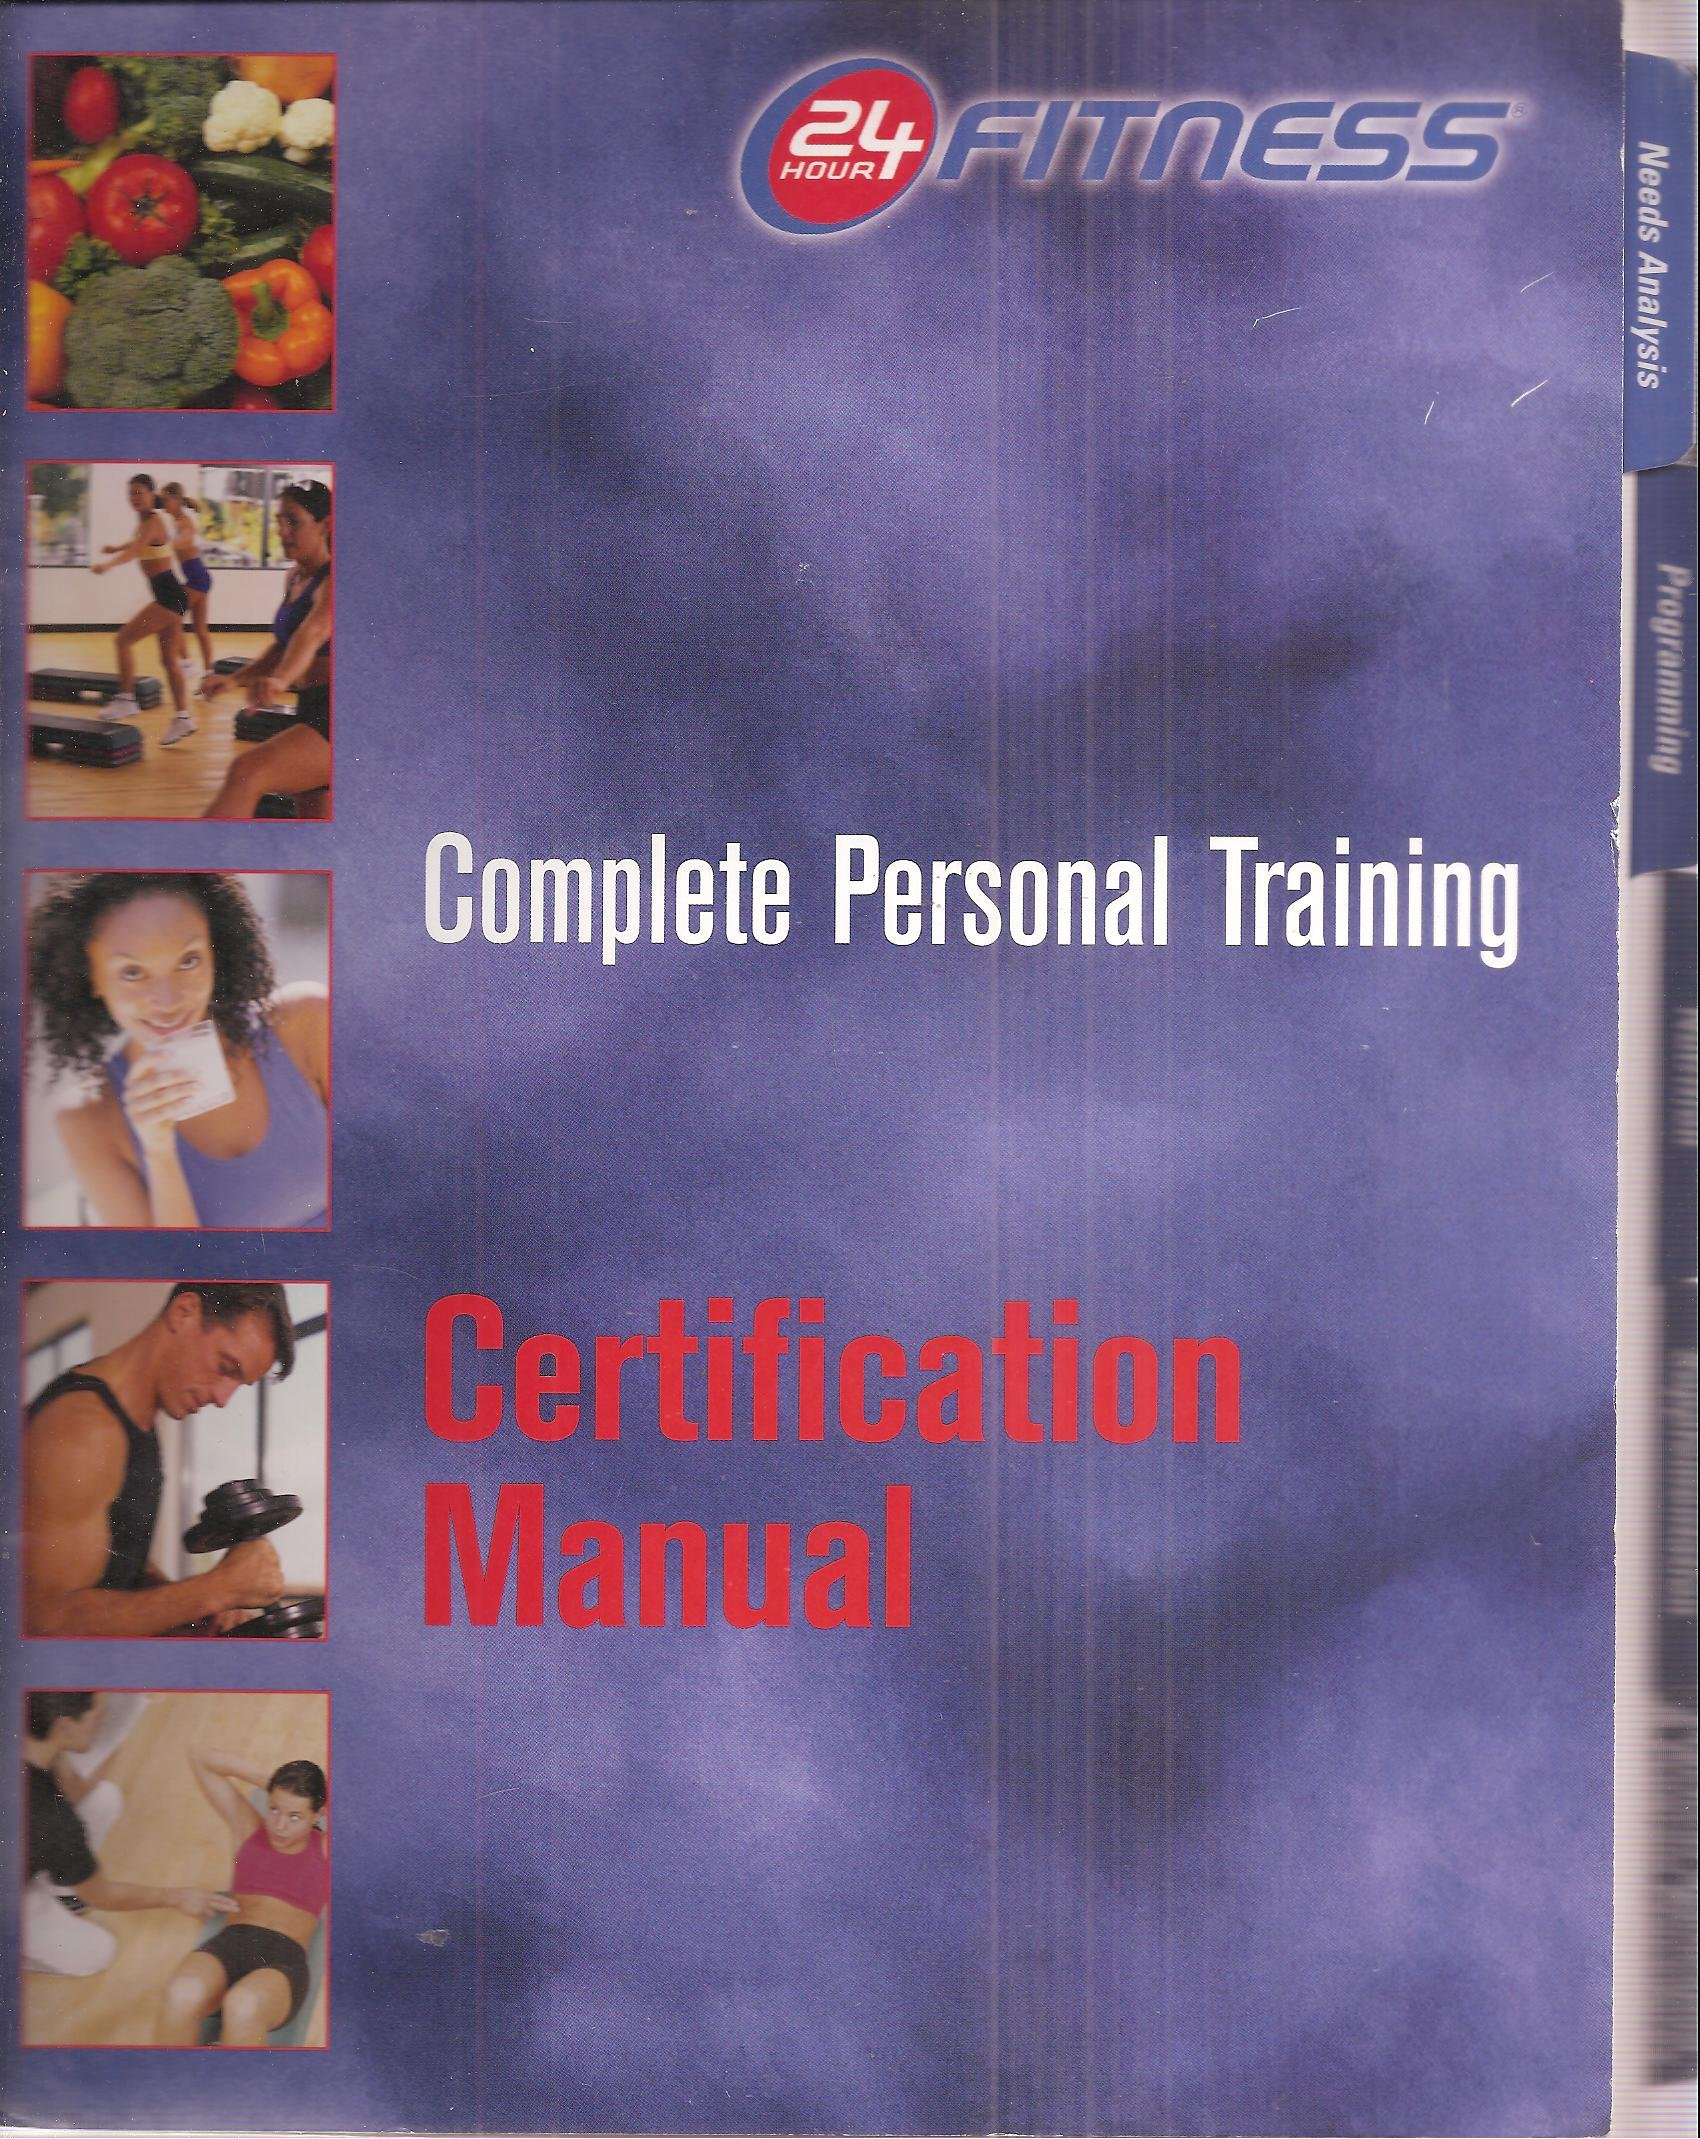 24 Hour Fitness Complete Personal Training Certification Manual